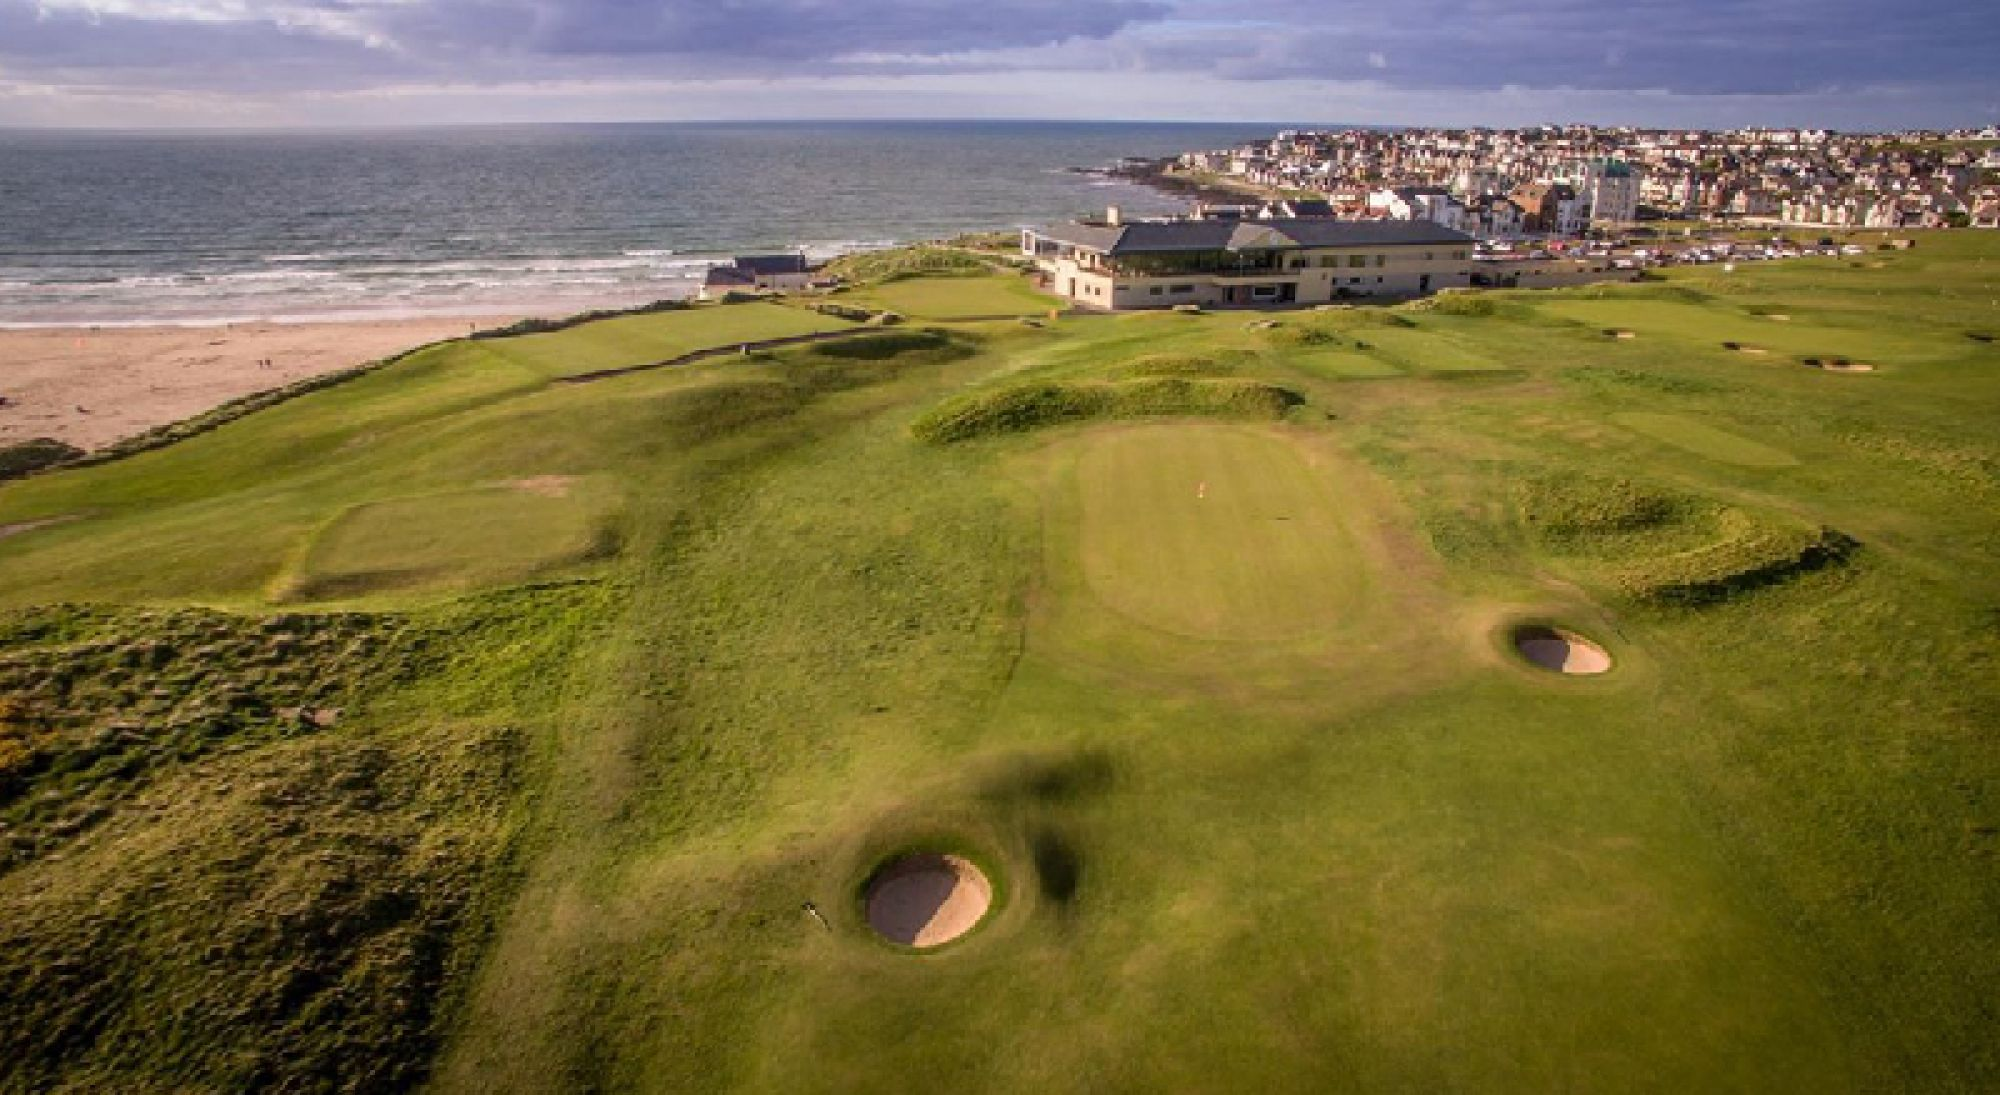 Portstewart Golf Club offers some of the premiere golf course within Northern Ireland